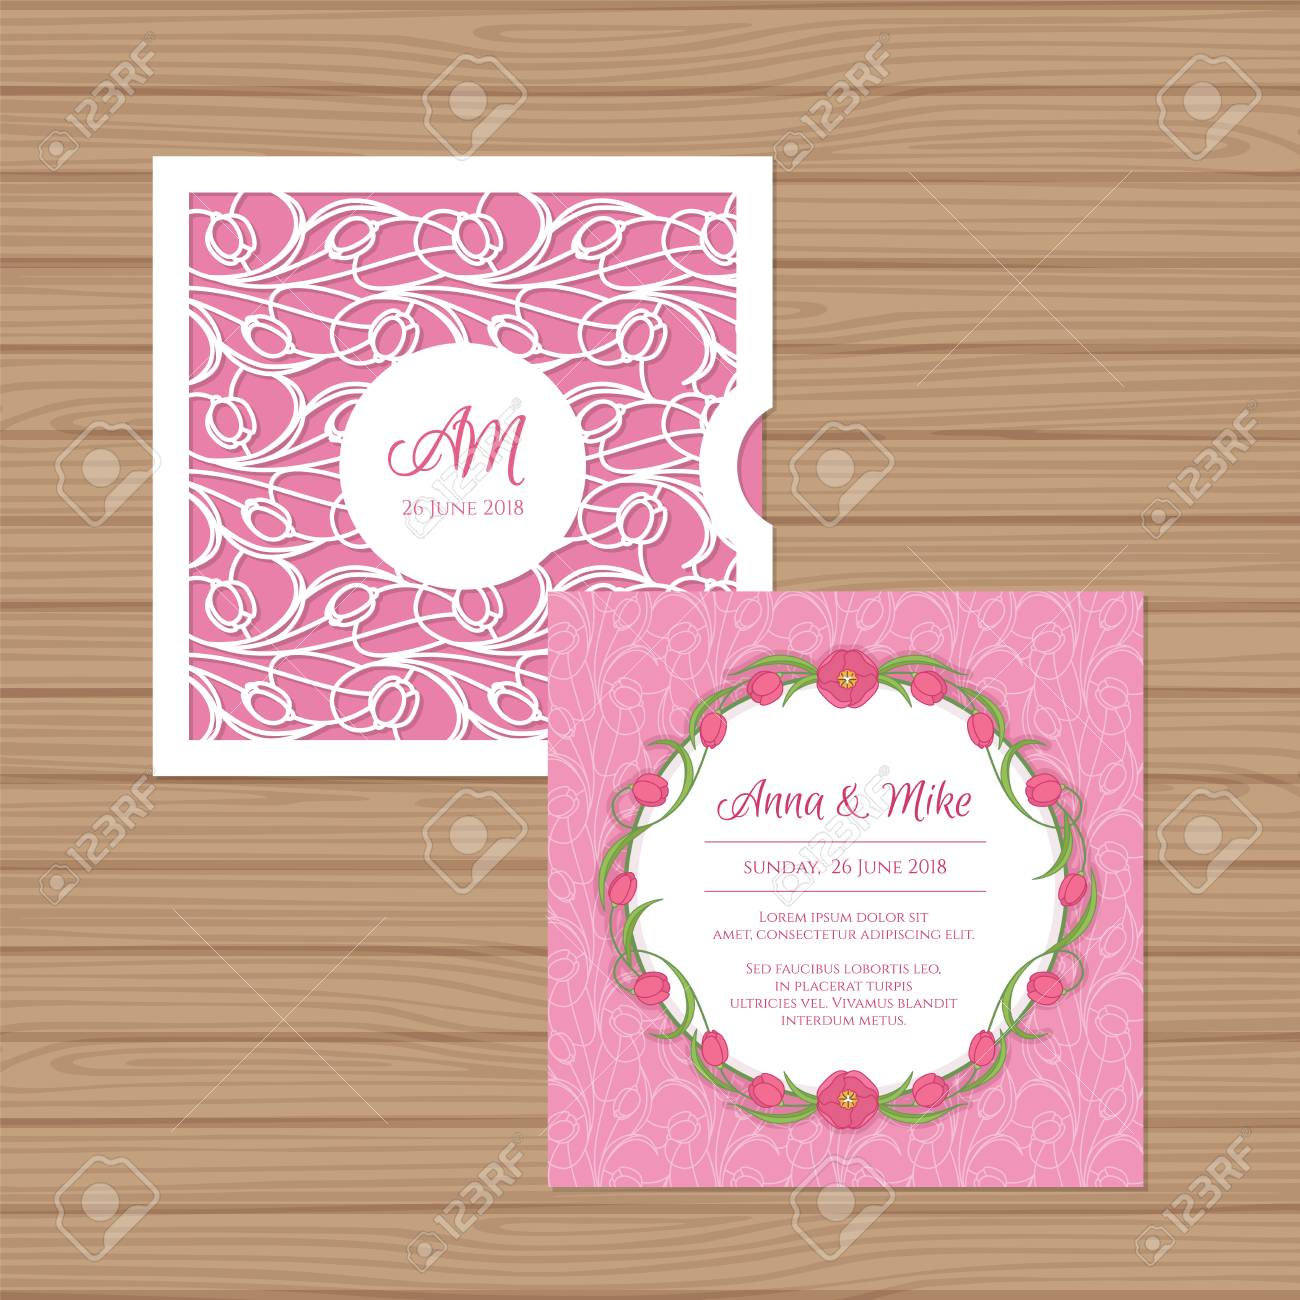 wedding invitation or greeting card with flower ornament cut